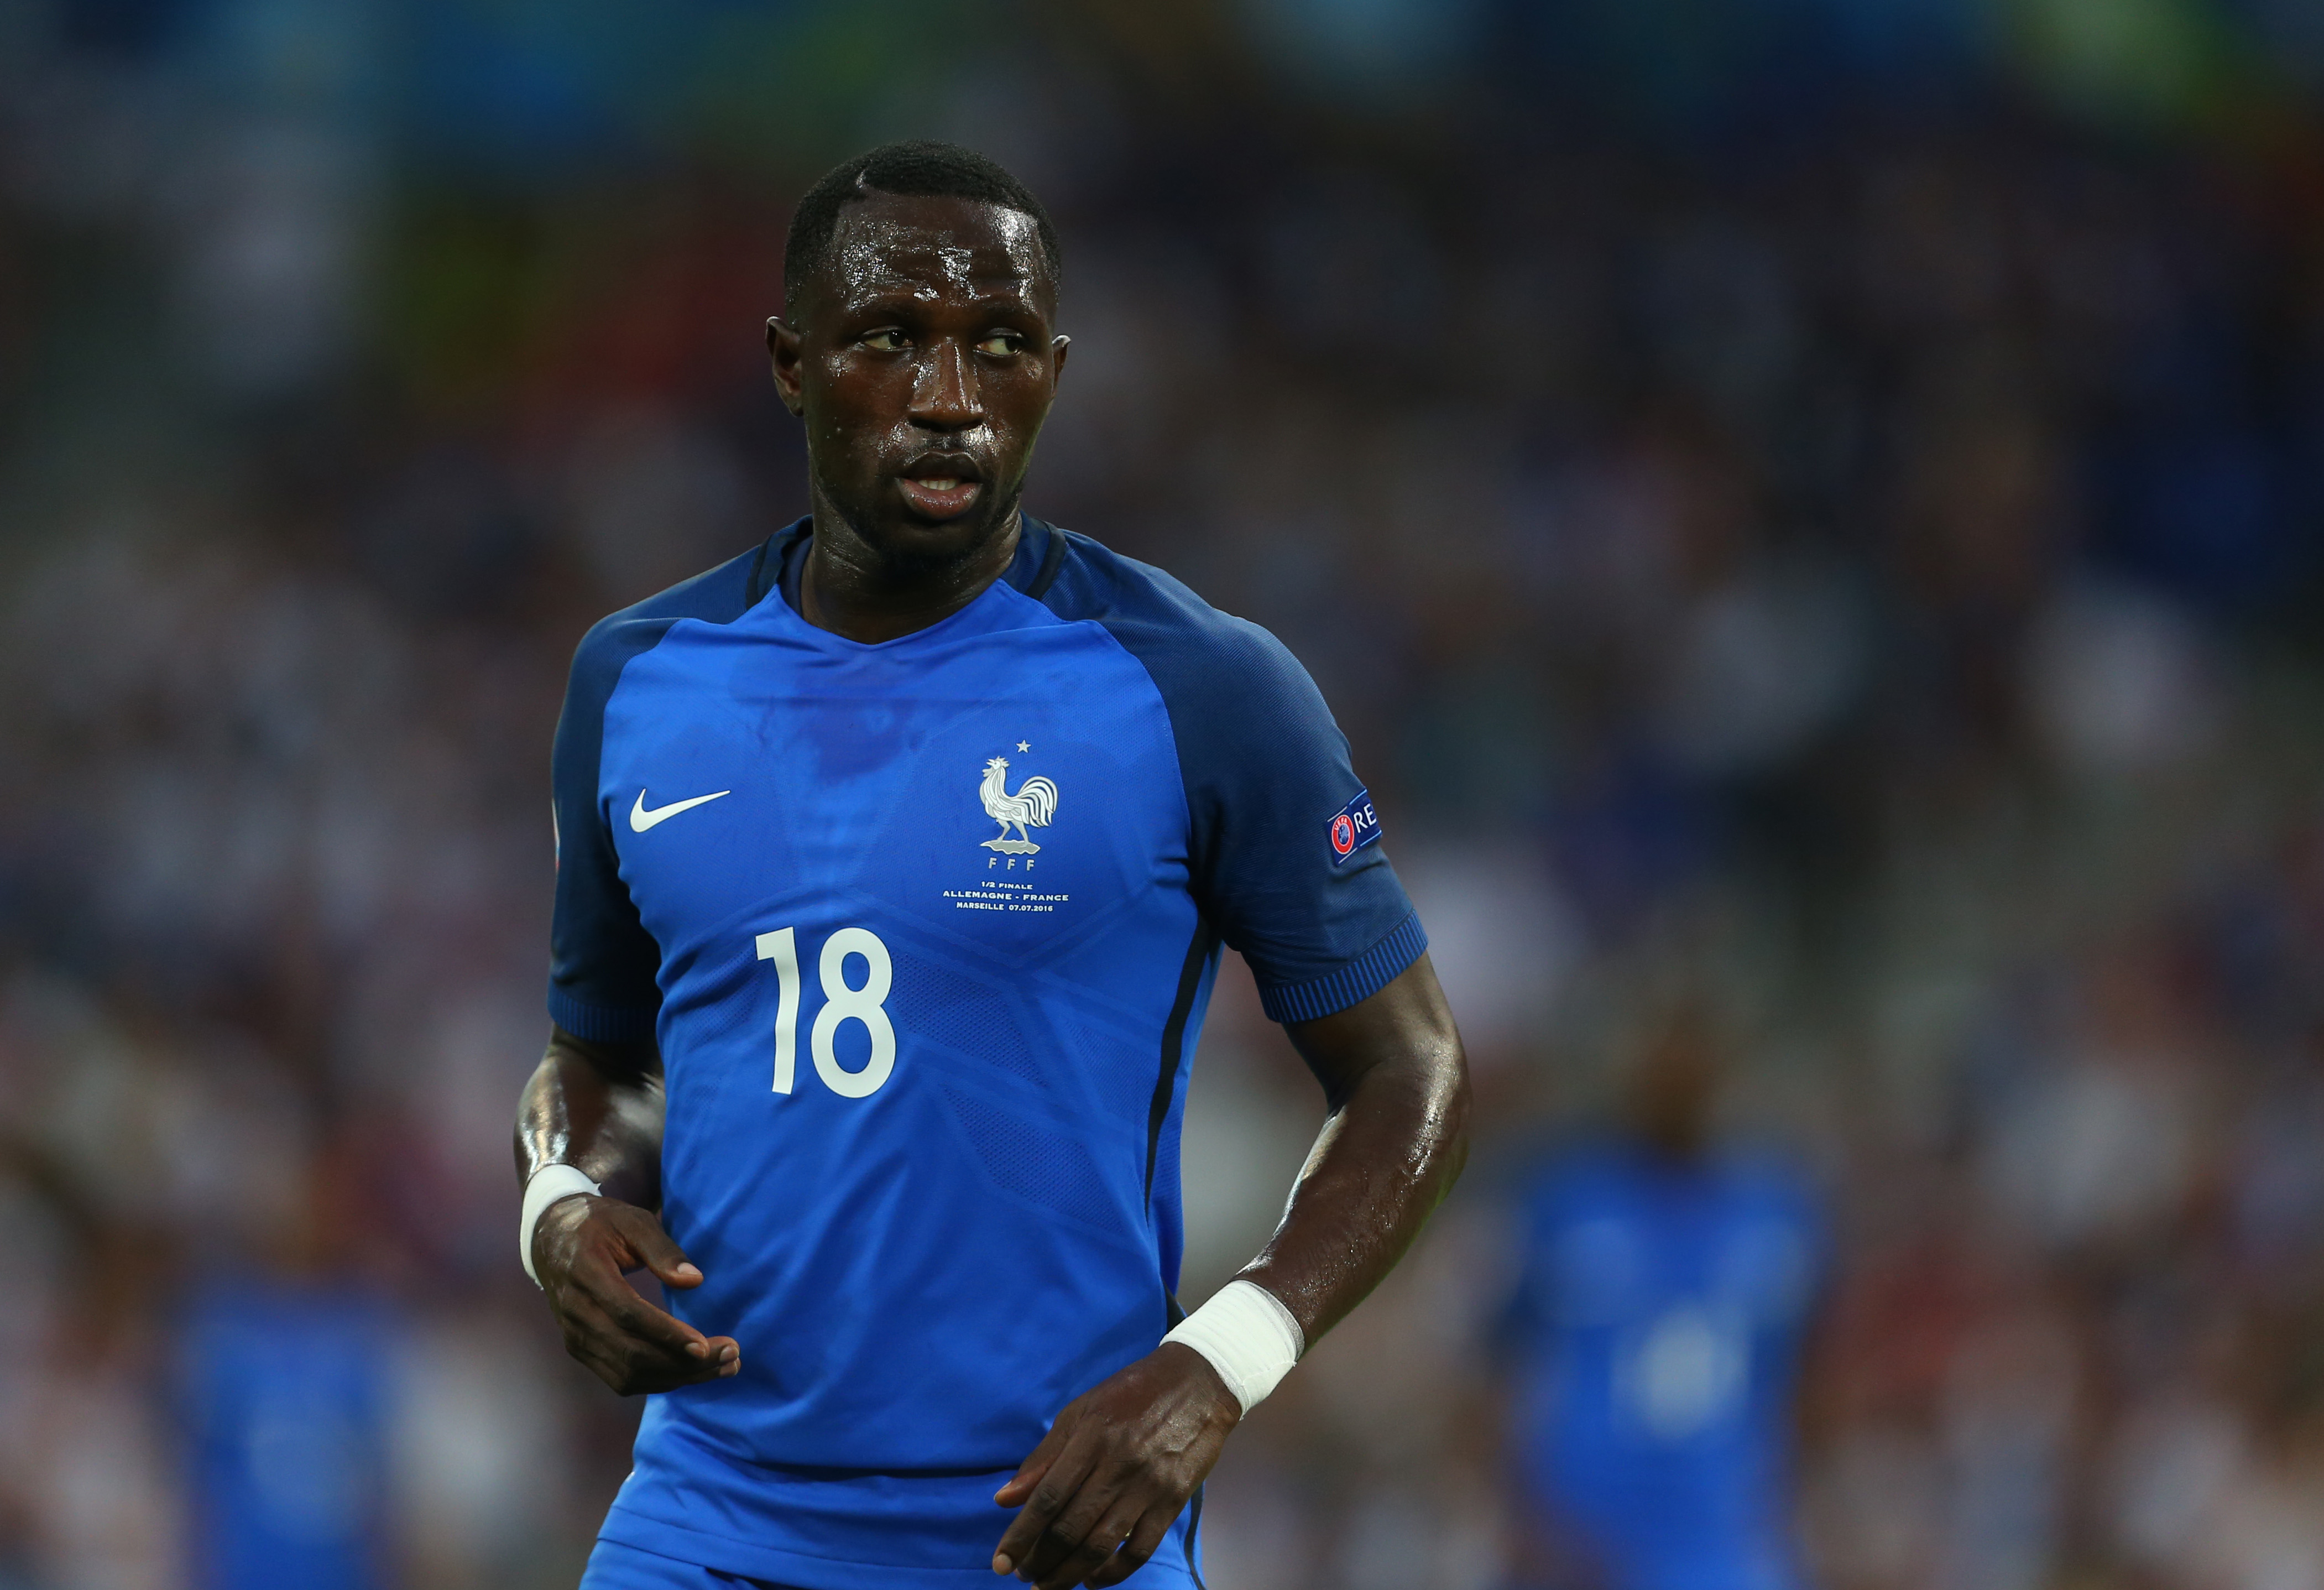 Tottenham and Chelsea target Moussa Sissoko is in London, says Didier Deschamps